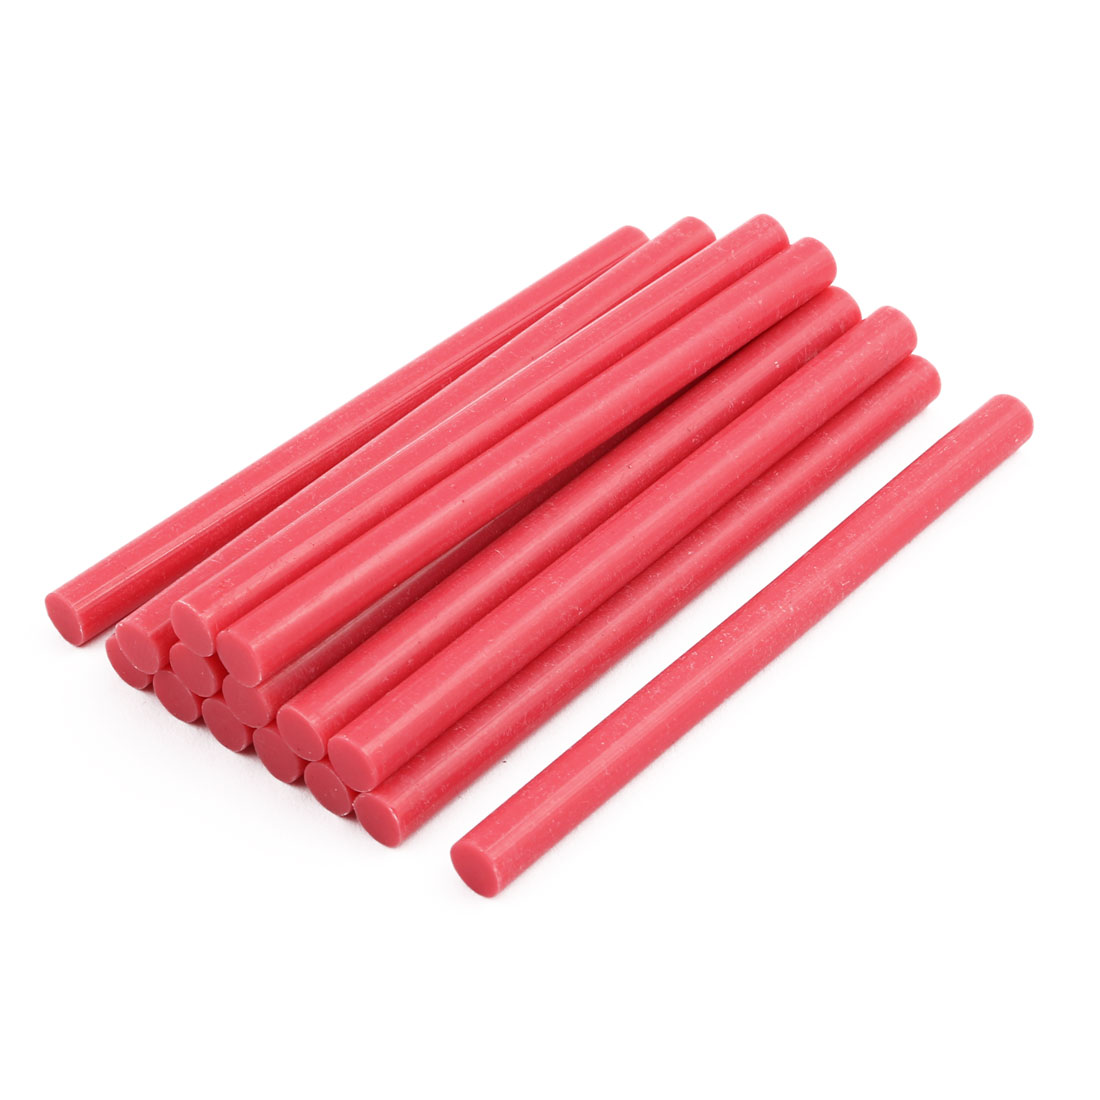 7mmx100mm Heating  Hot Melt Glue Craft Model Adhesive Stick Pink 15pcs